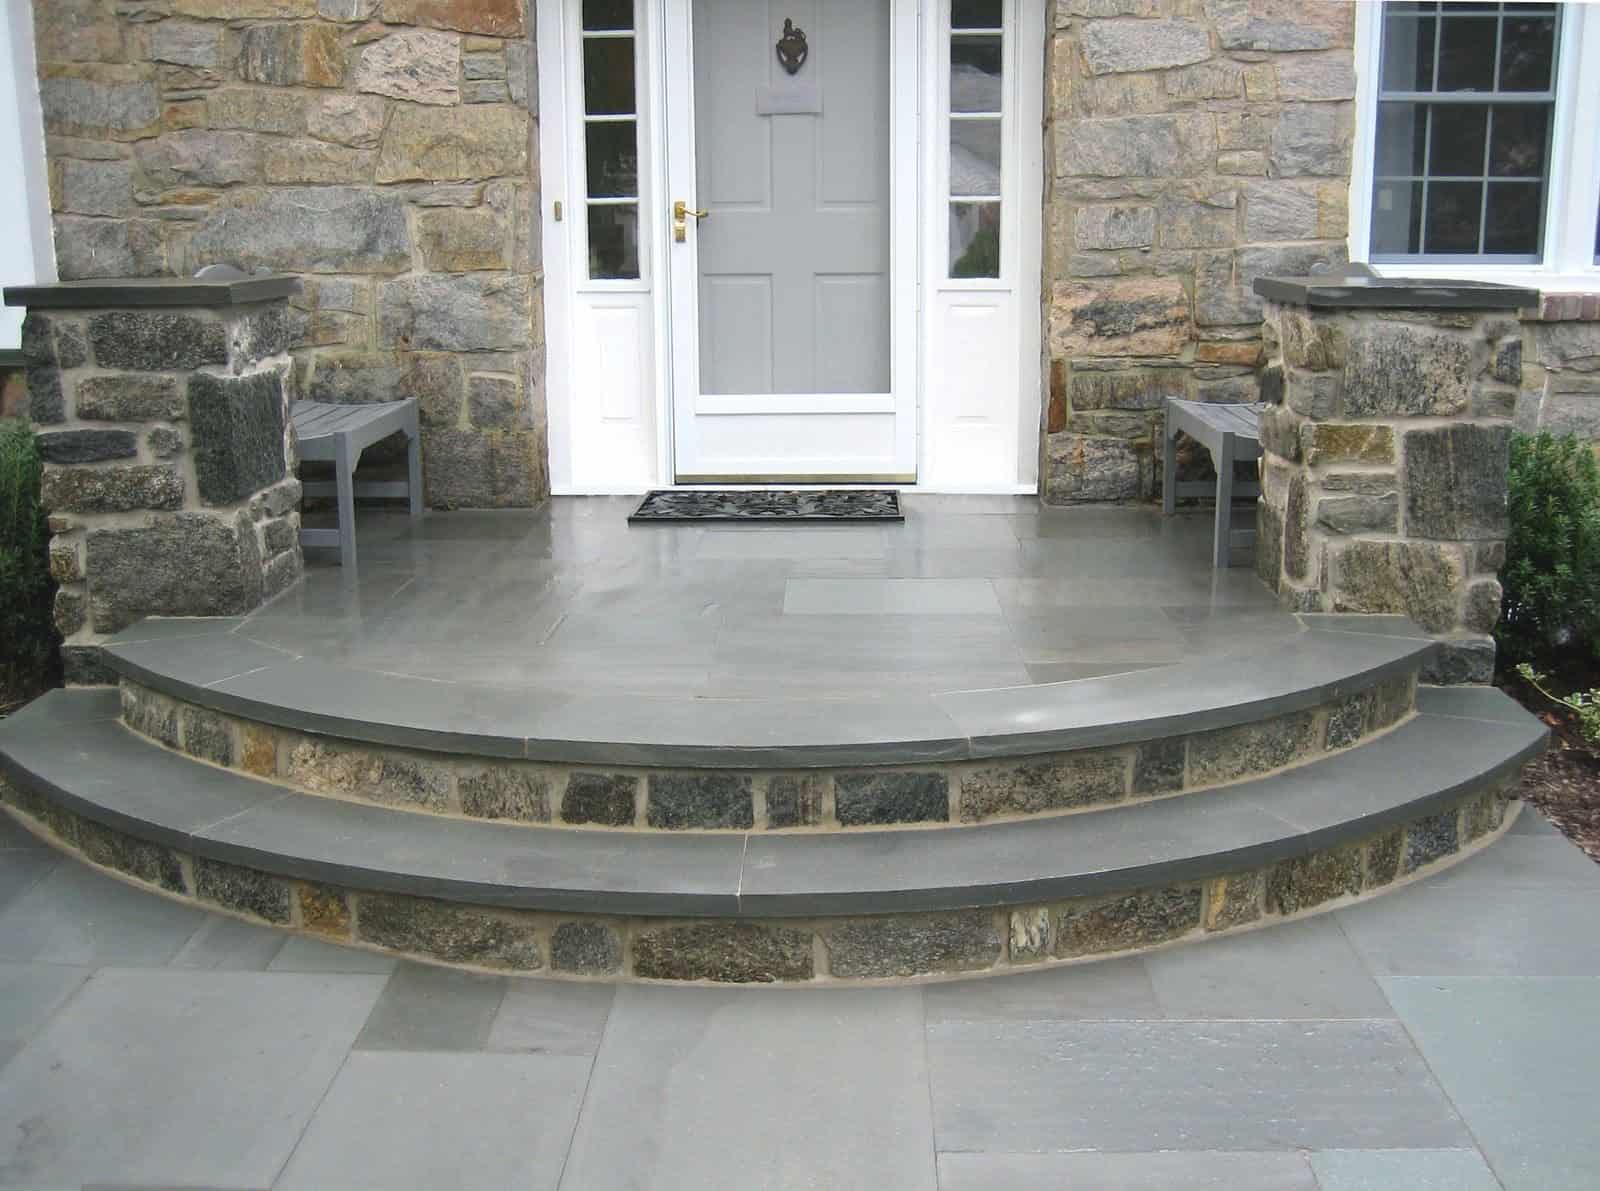 Natural Stone Stoop - 1 inch Thermal Bluestone Walkway and Stoop - Random Pattern - Merrick, Long Island NY